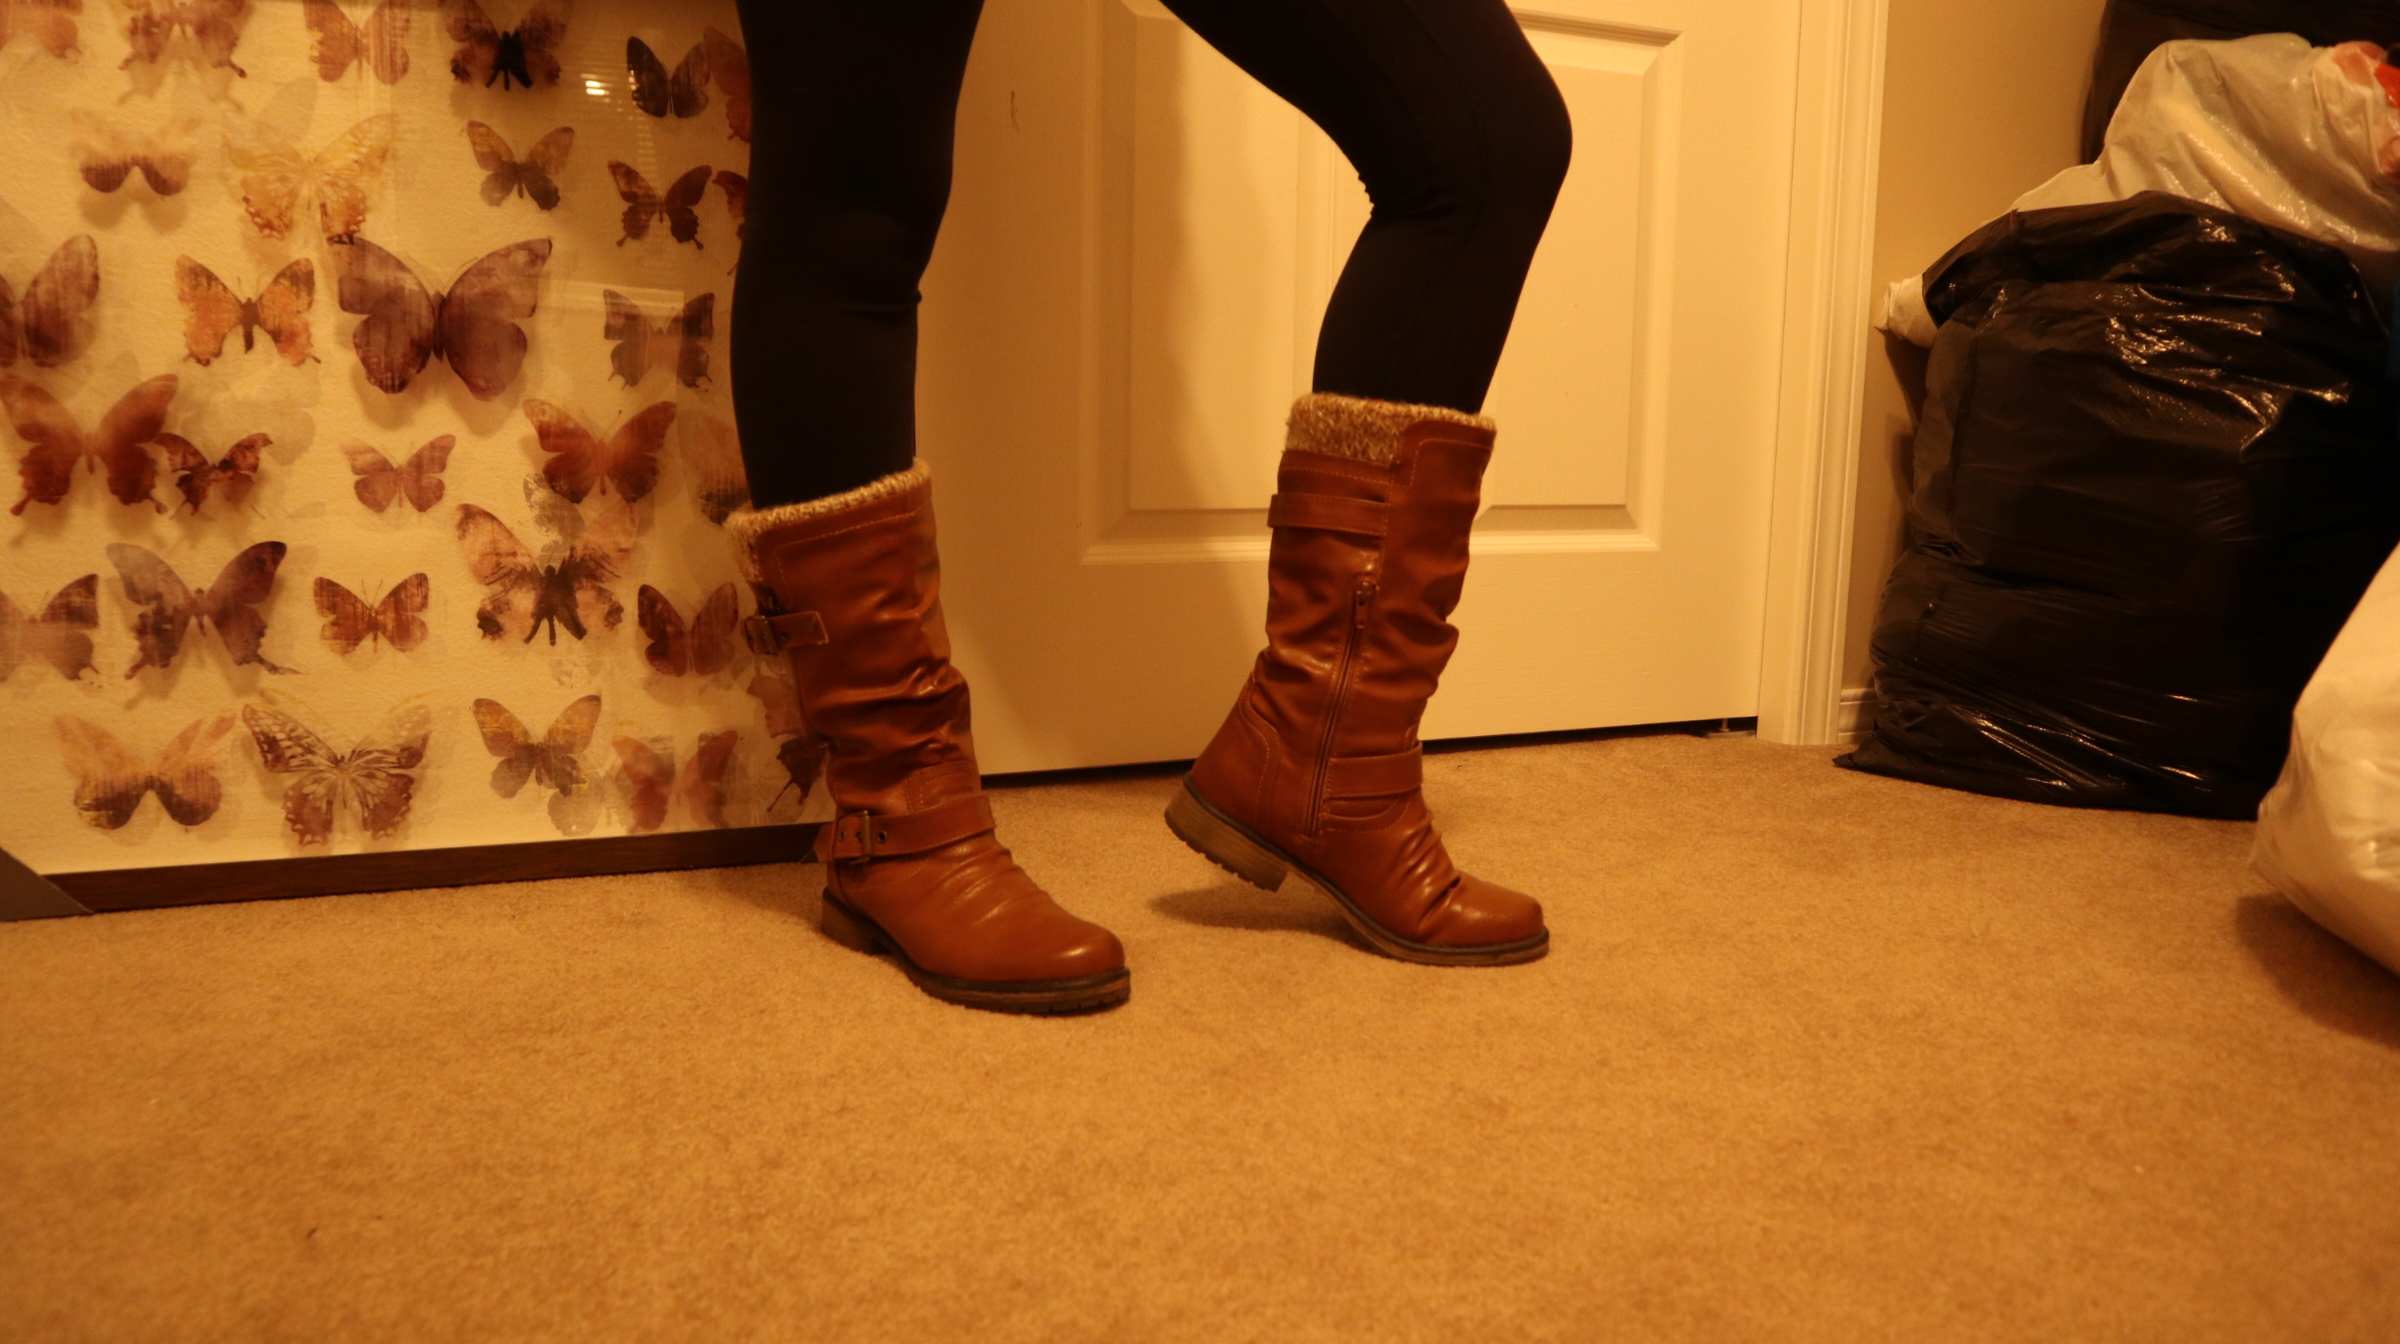 Boots I bought from a thrift store!